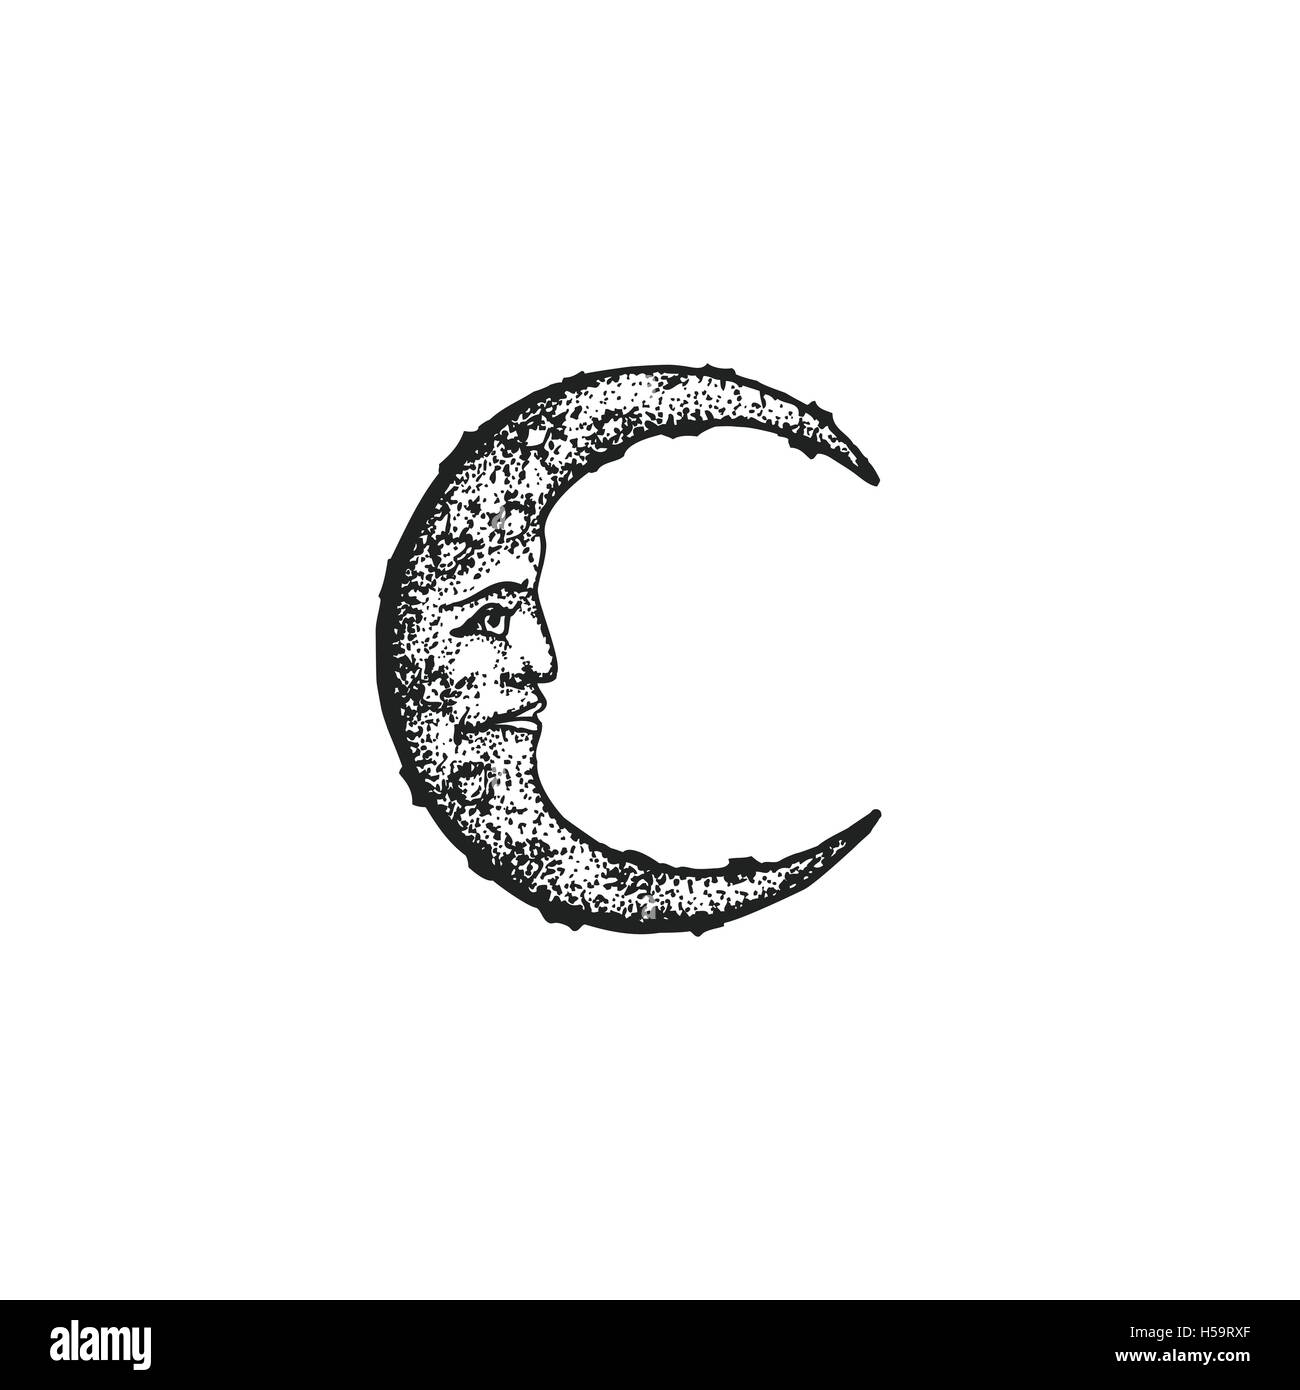 Vector Black Work Tattoo Dot Art Hand Drawn Engraving Style Vintage Moon Face Illustration Isolated White Background